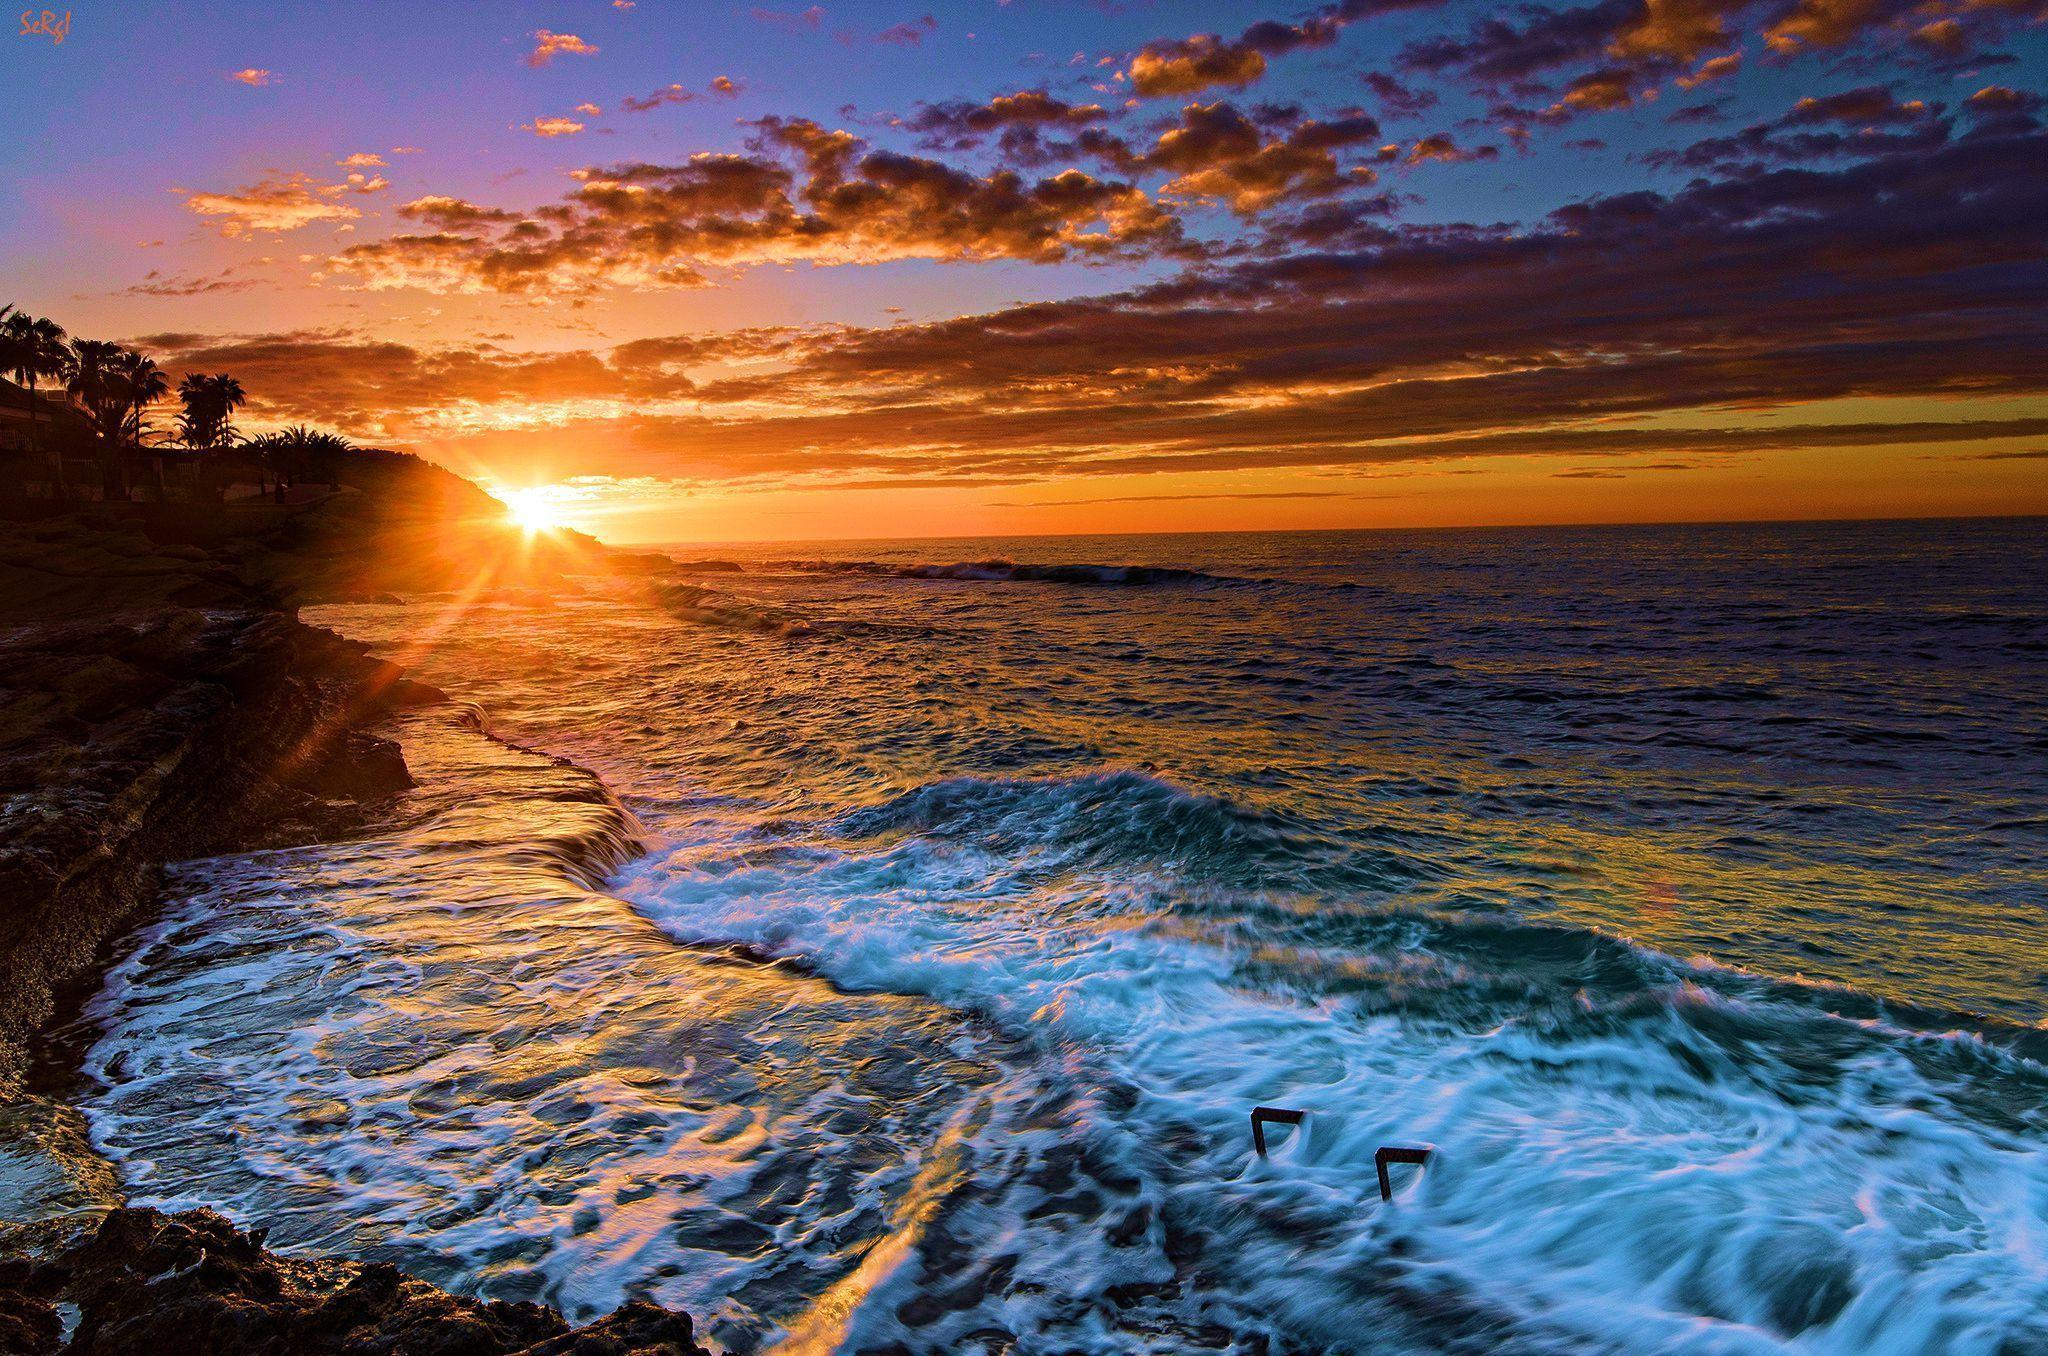 Sunset Desktop Backgrounds 2048x1356